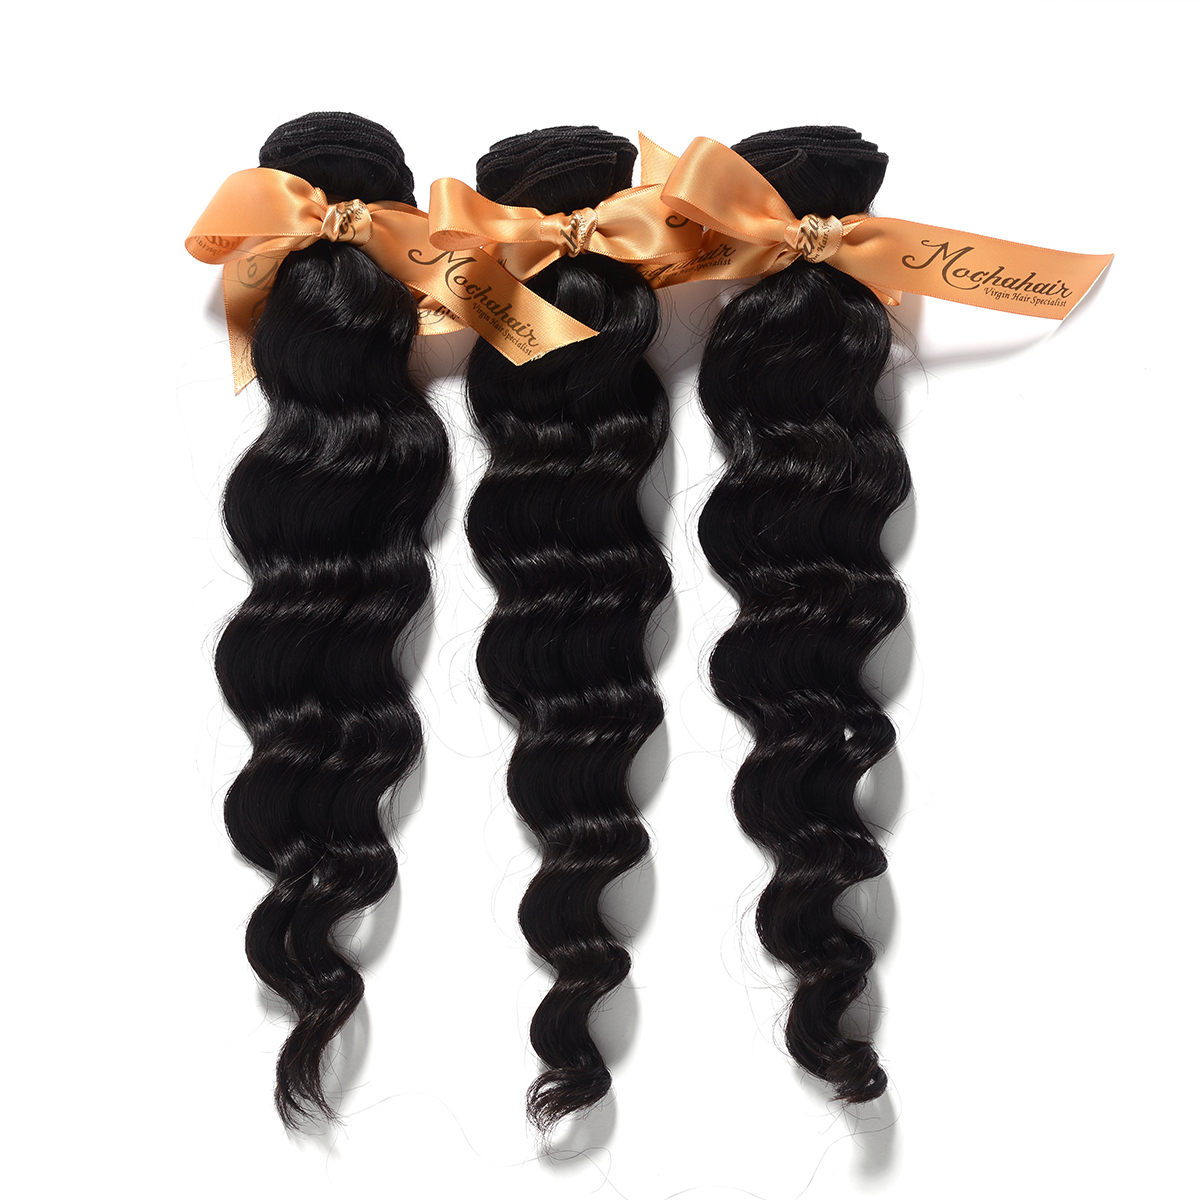 Us 1755 8a Mocha Hair 3 Or Mix 3 Pcs Lot Loose Wave Brazilian